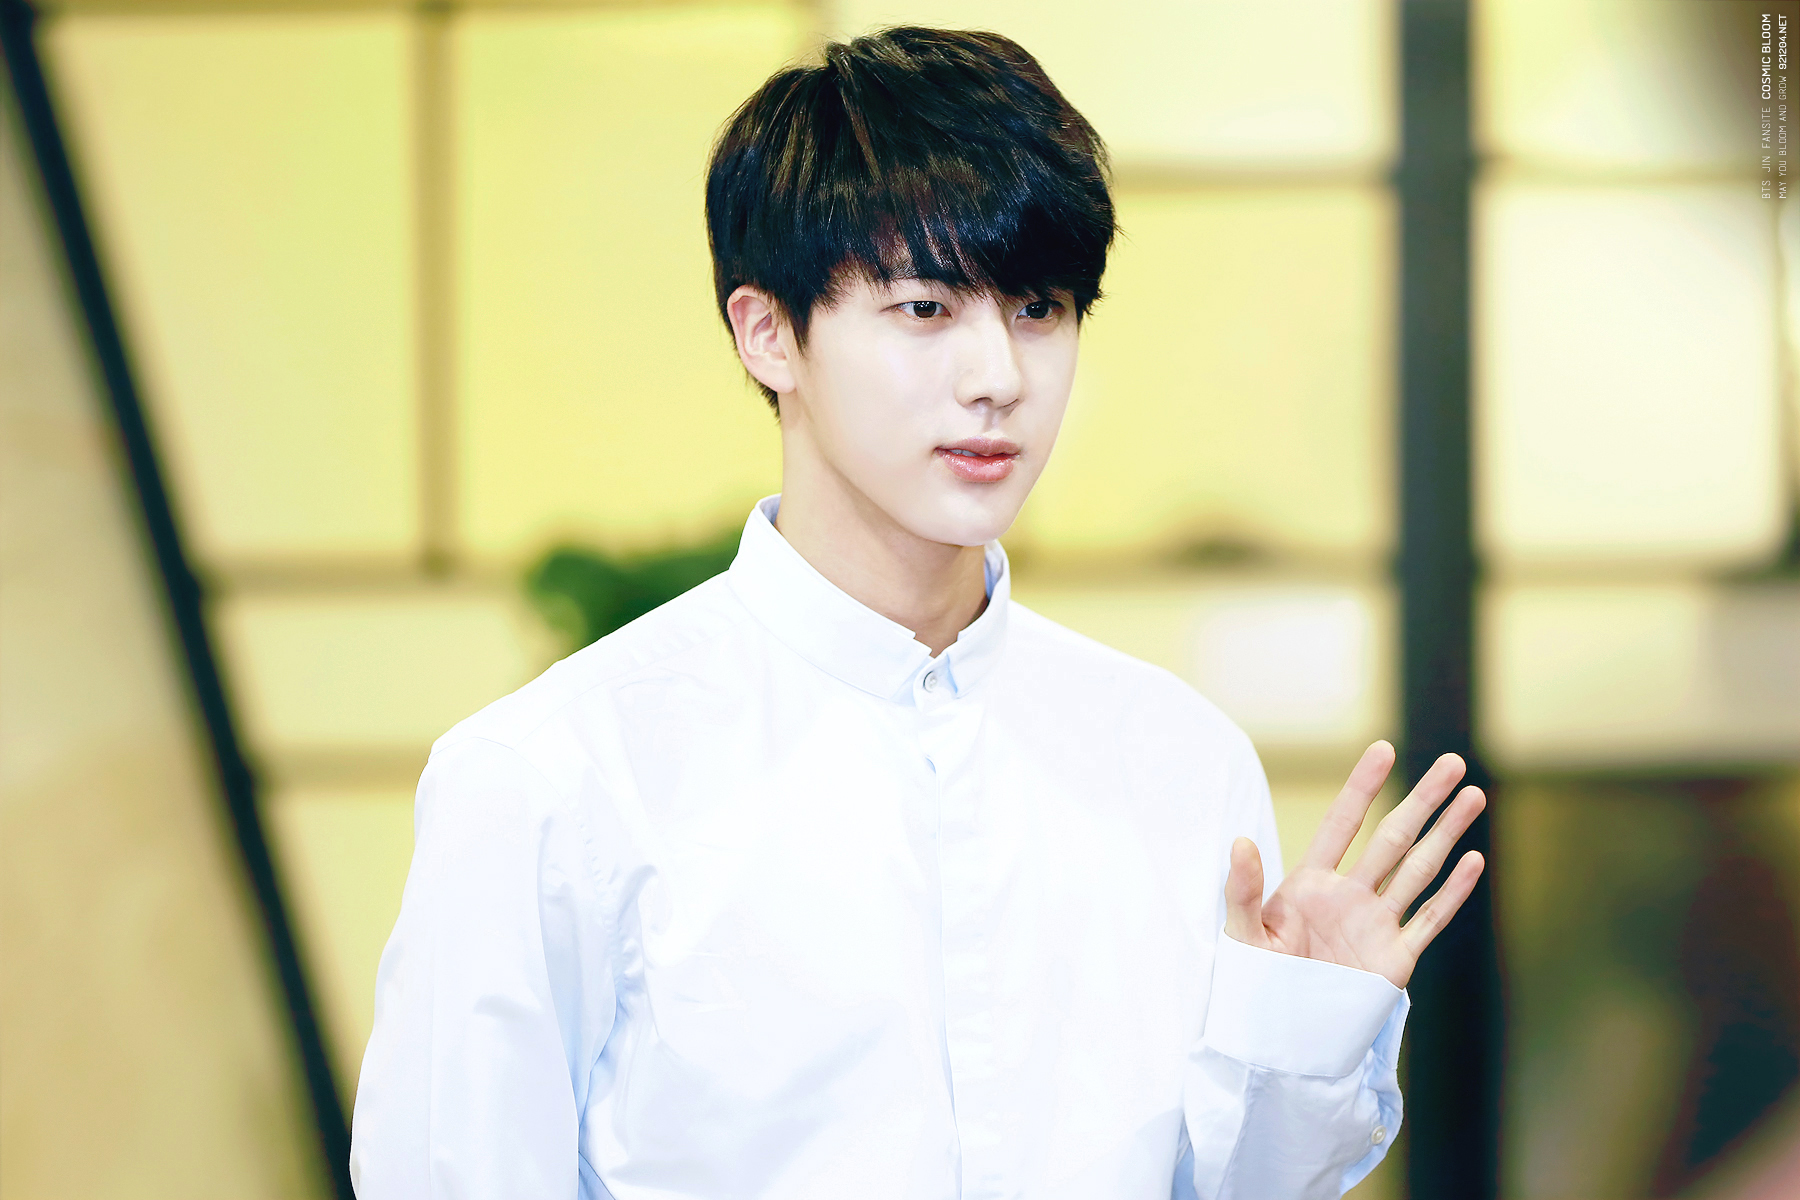 Bts Jin Godly Visuals Celebrity Photos Onehallyu